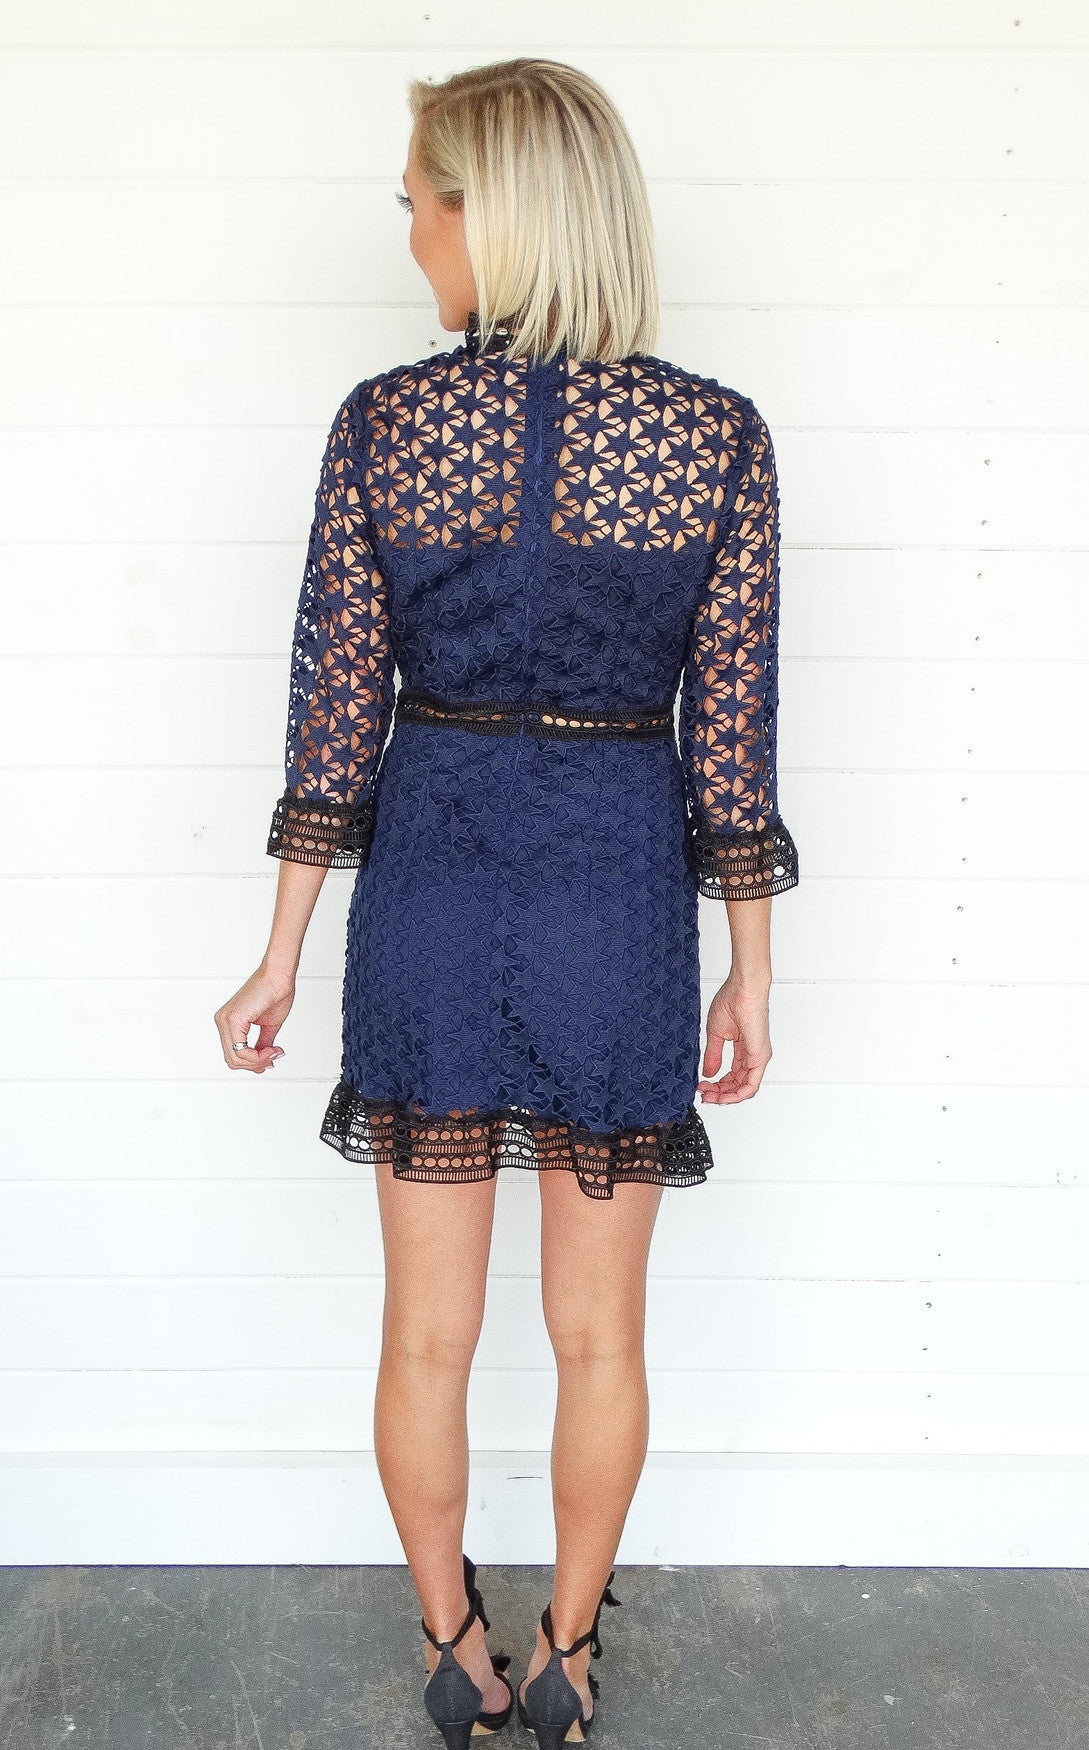 STAR LACE DRESS